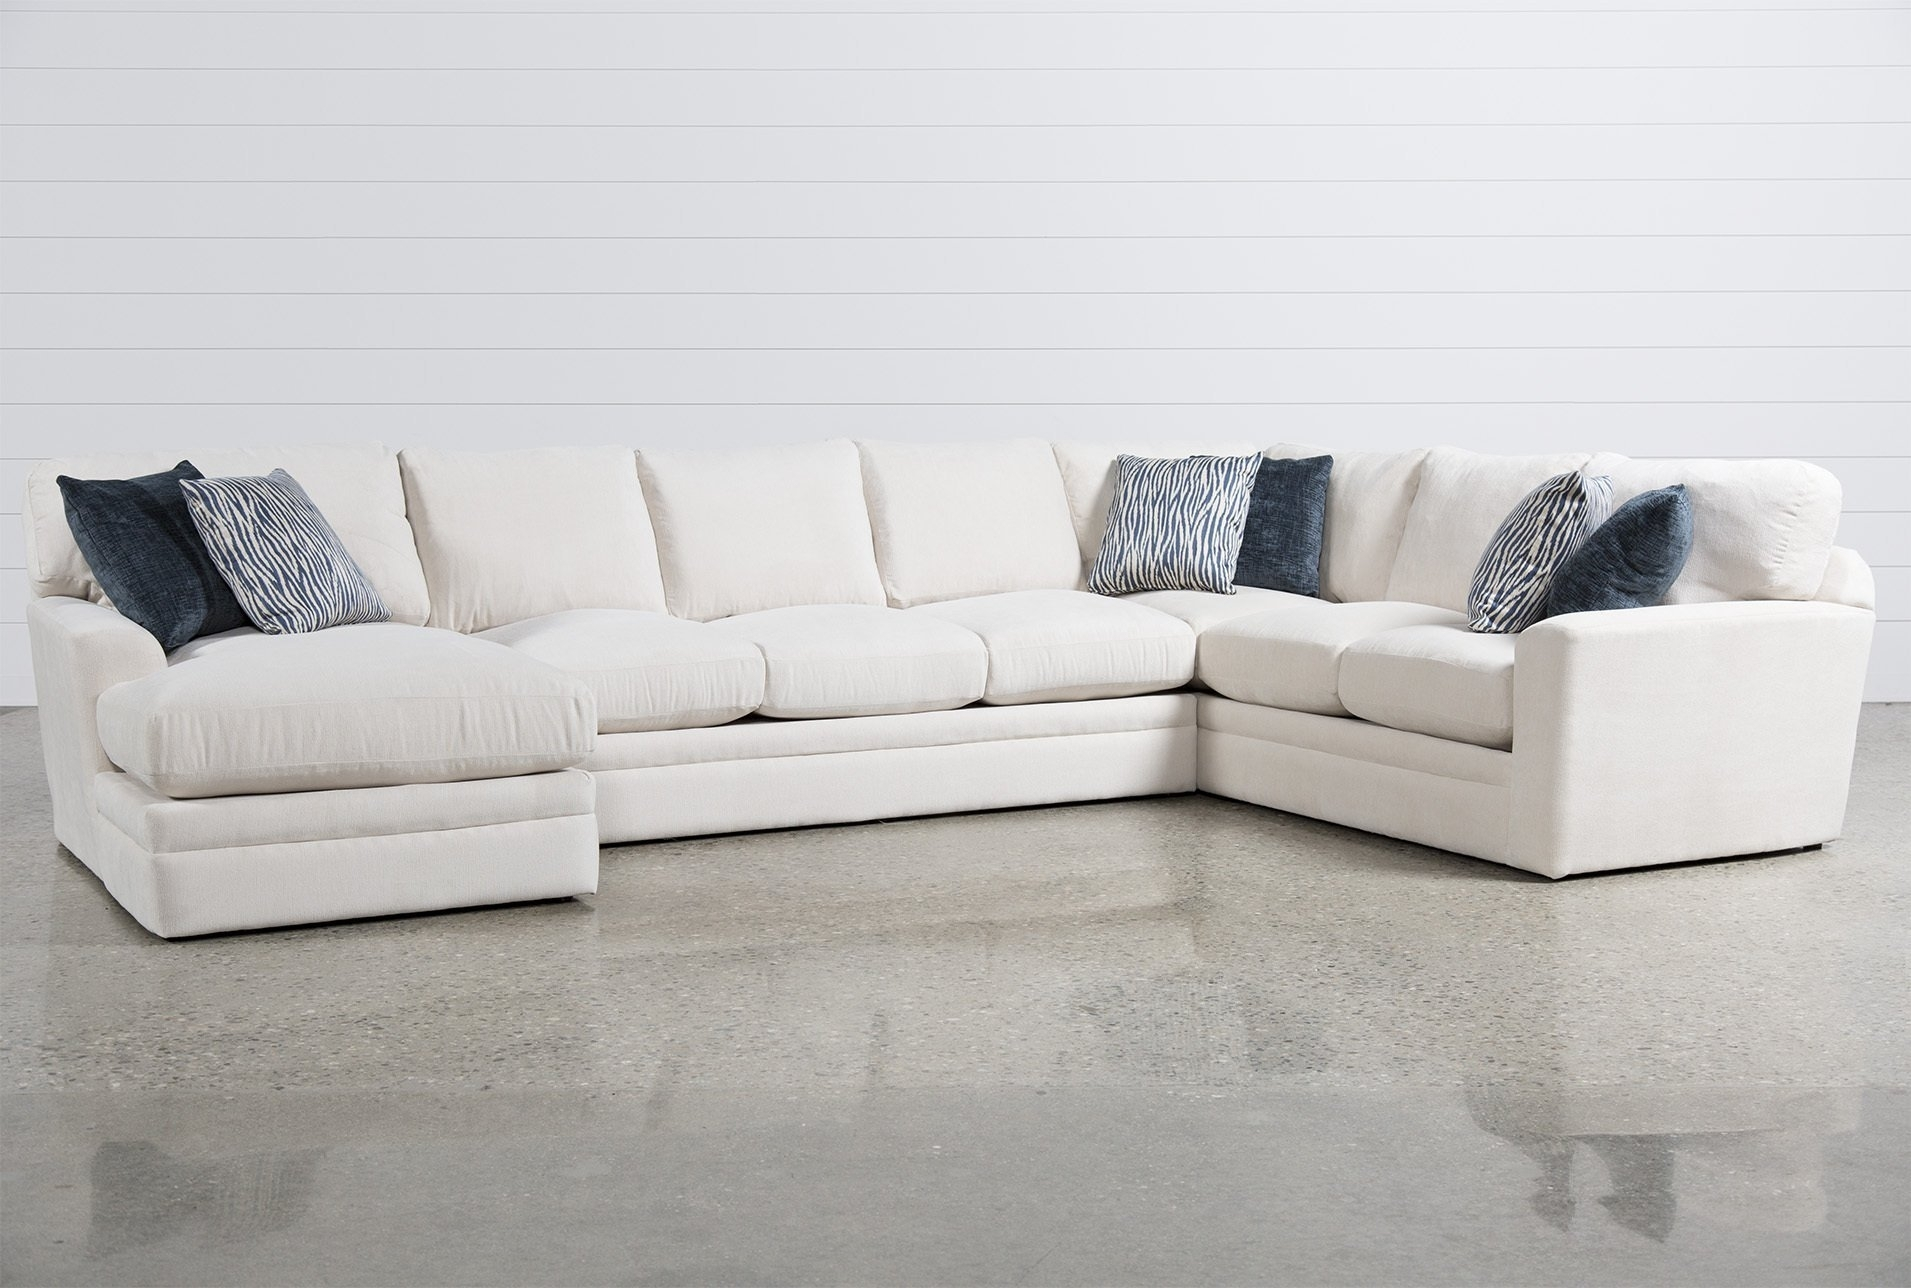 Remarkable Glamour Ii Piece Sectional Has Been Successfully Added To Intended For Mesa Foam 2 Piece Sectionals (View 5 of 25)